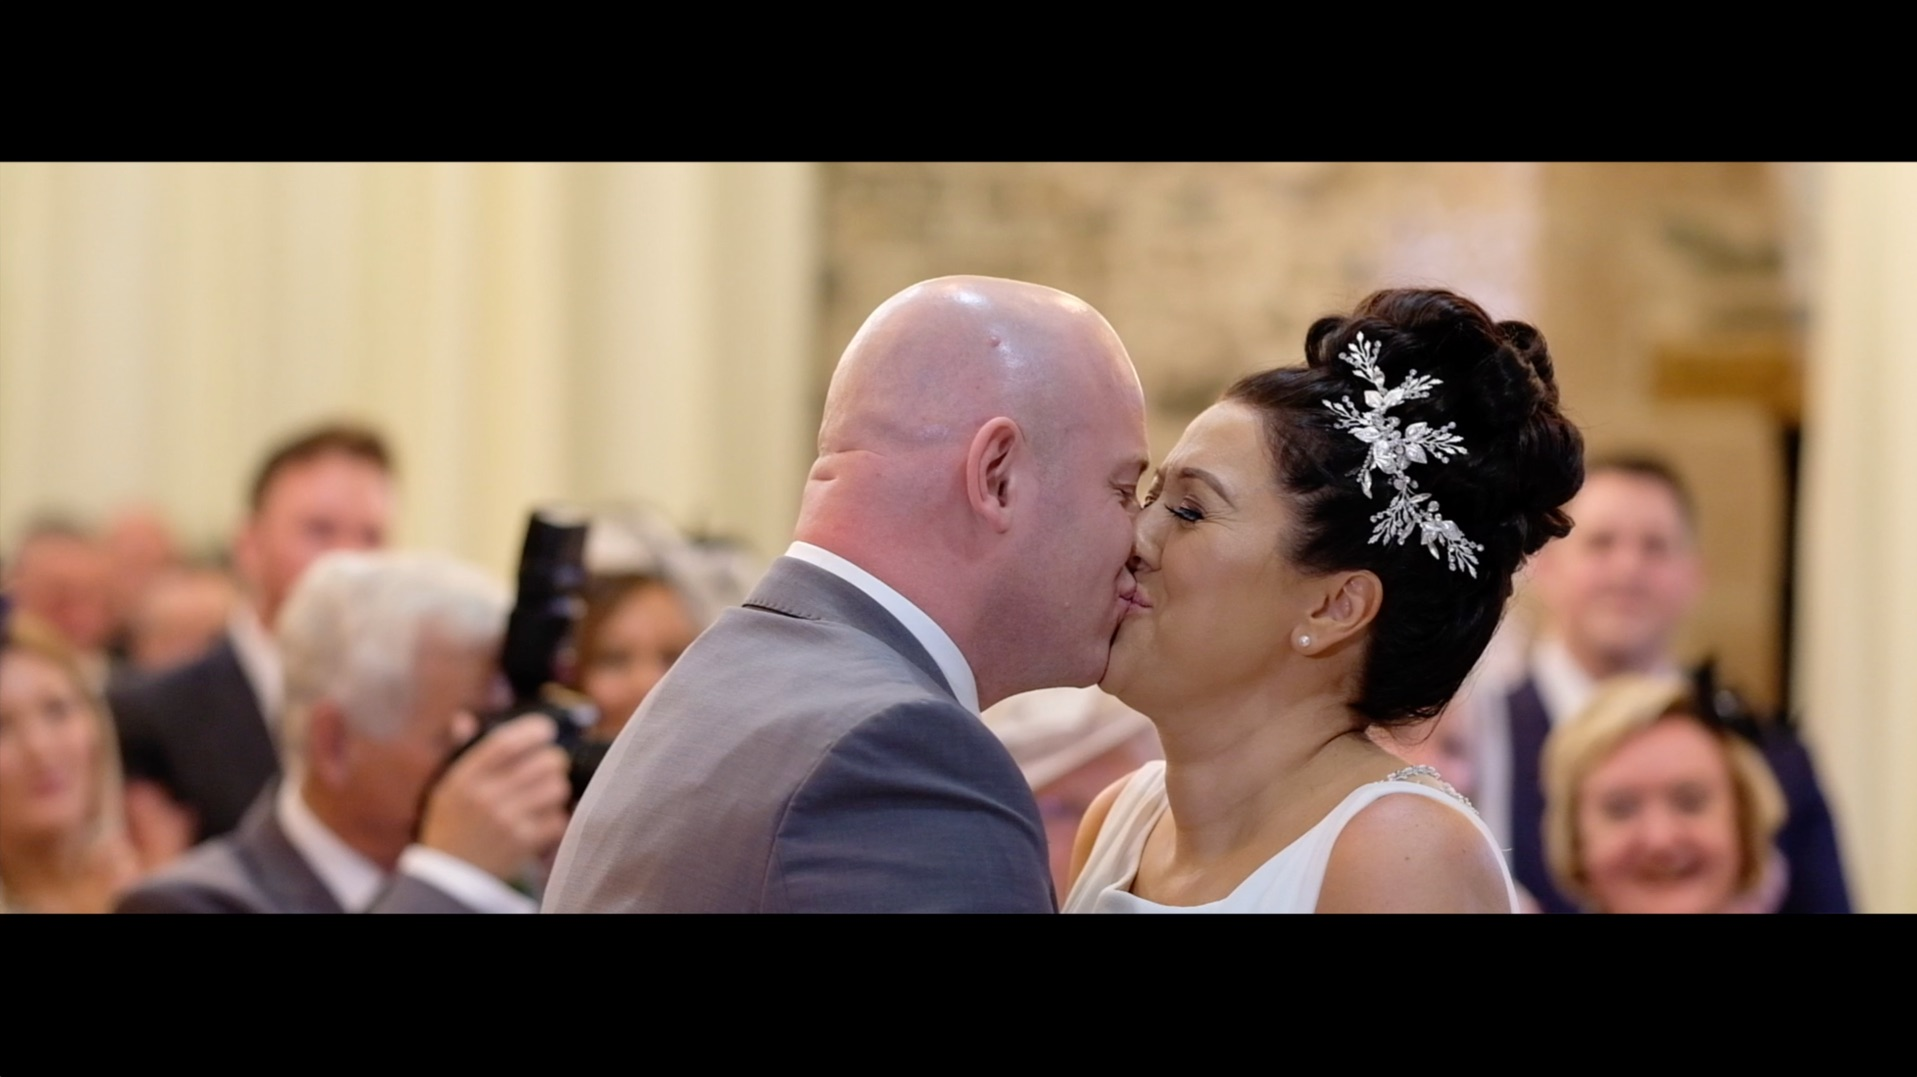 Bride and Groom's first kiss after the wedding ceremony is complete